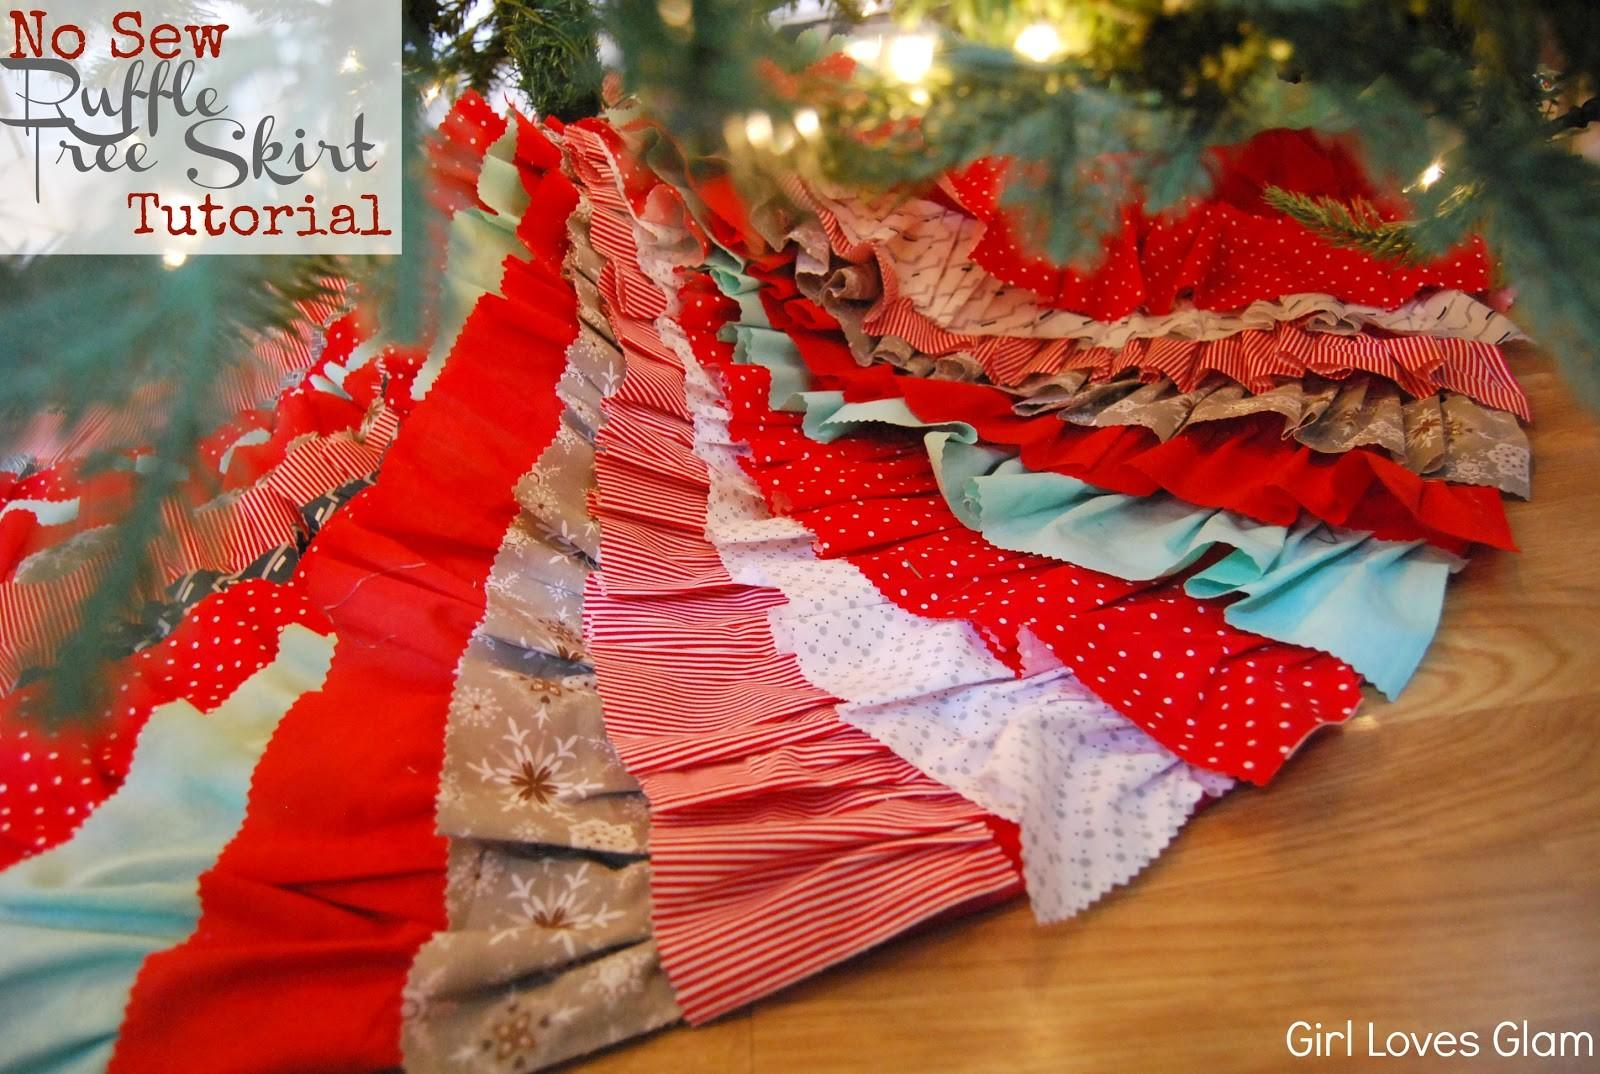 Sew Ruffle Tree Skirt Tutorial Ish Girl Loves Glam